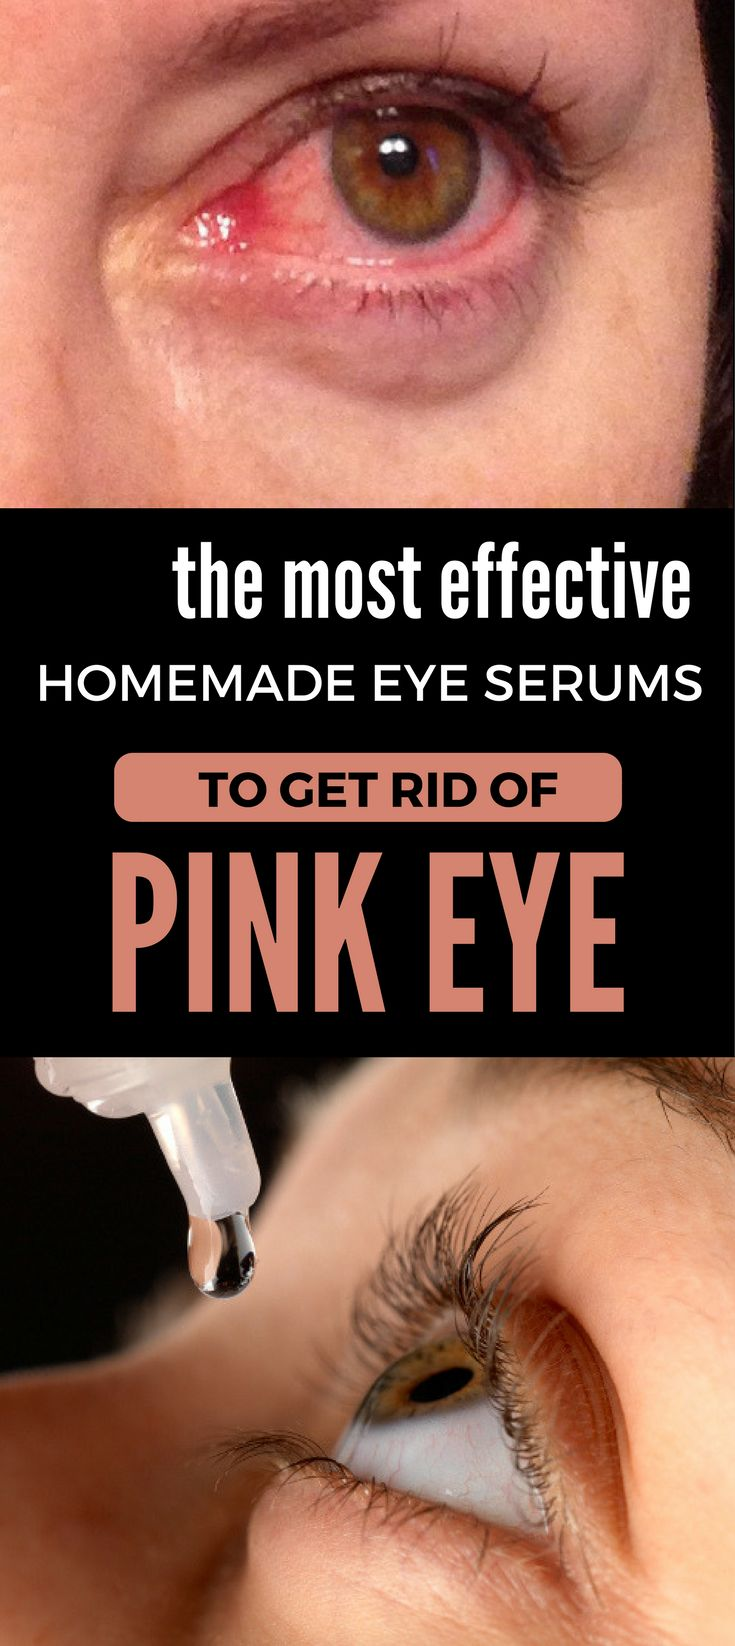 Another hour!THE MOST EFFECTIVE HOMEMADE EYE SERUMS TO GET RID OF PINK EYE